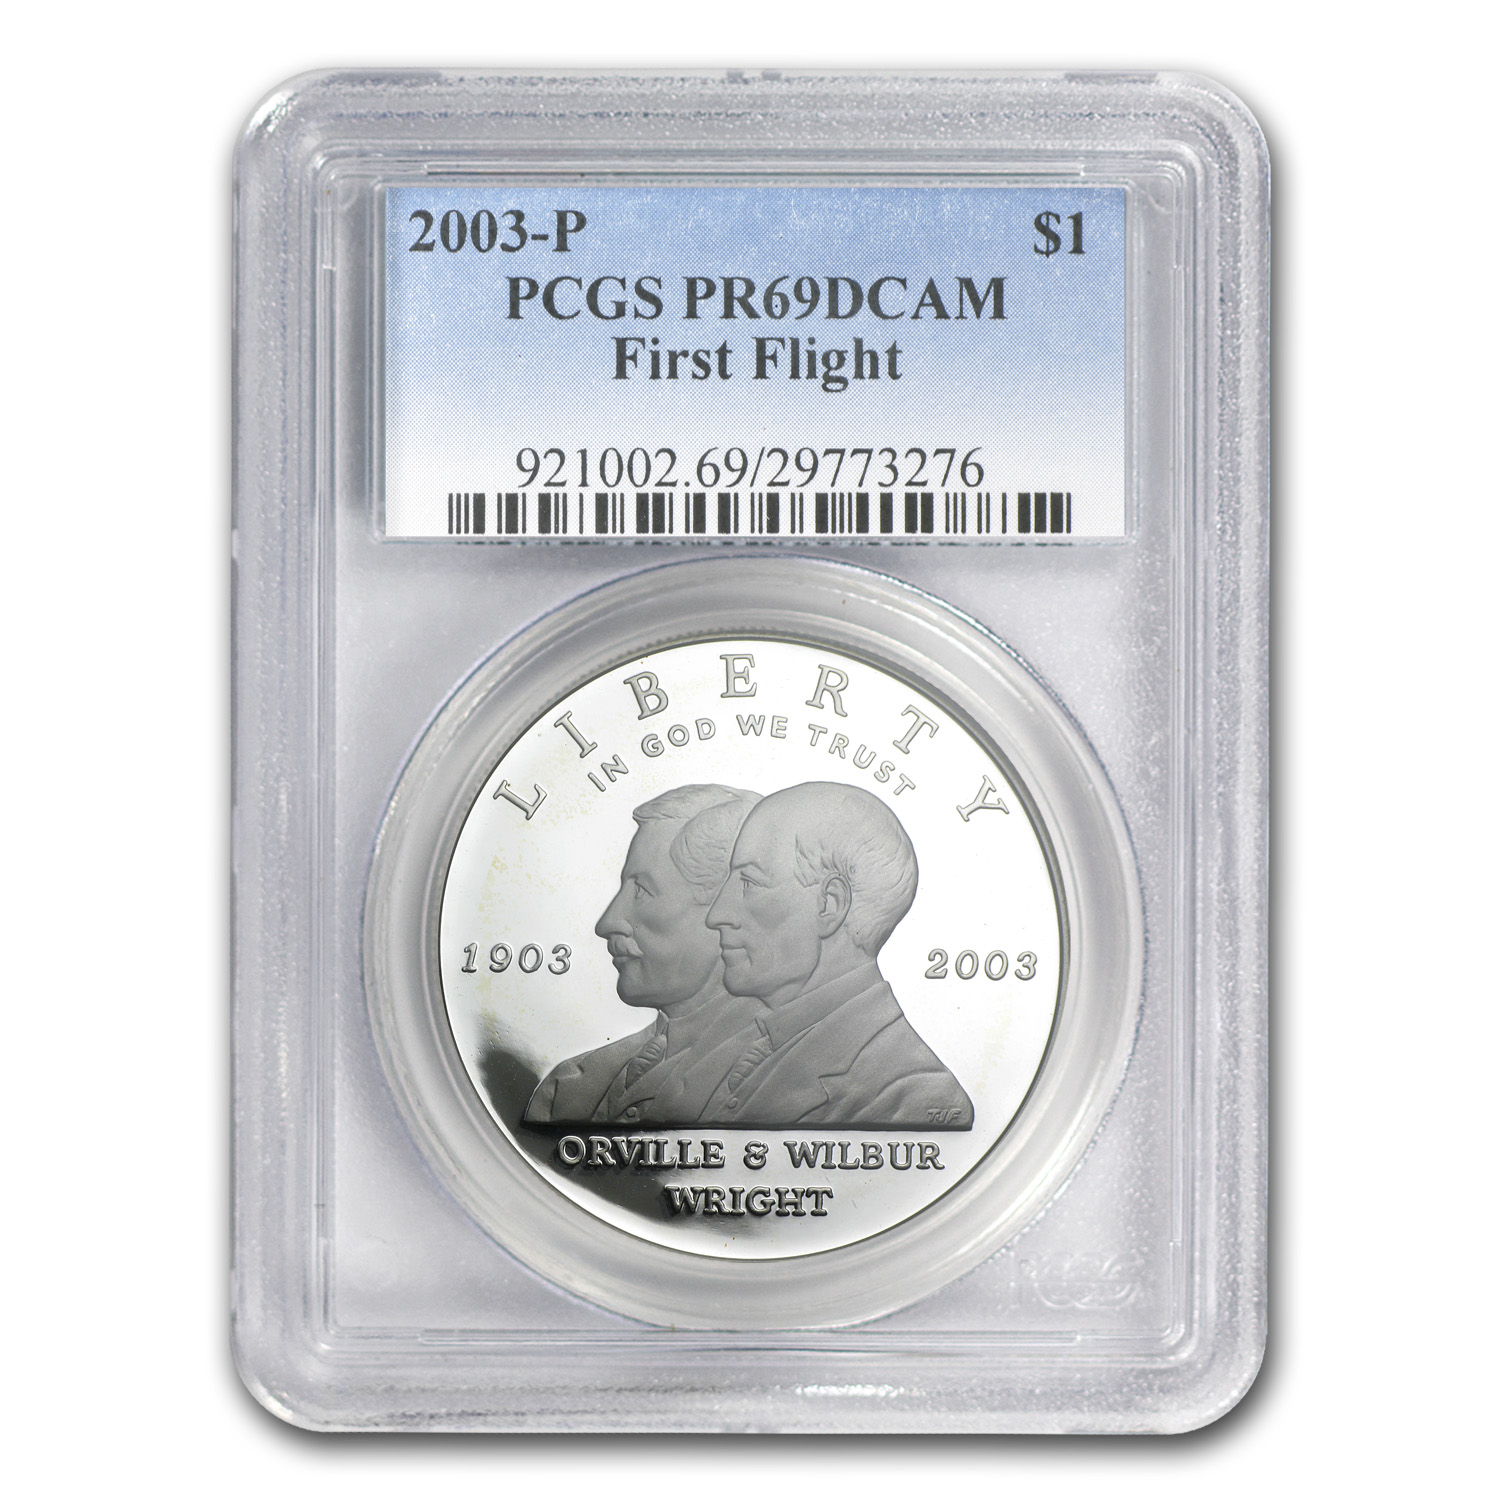 2003-P First Flight Centennial $1 Silver Commem PR-69 PCGS